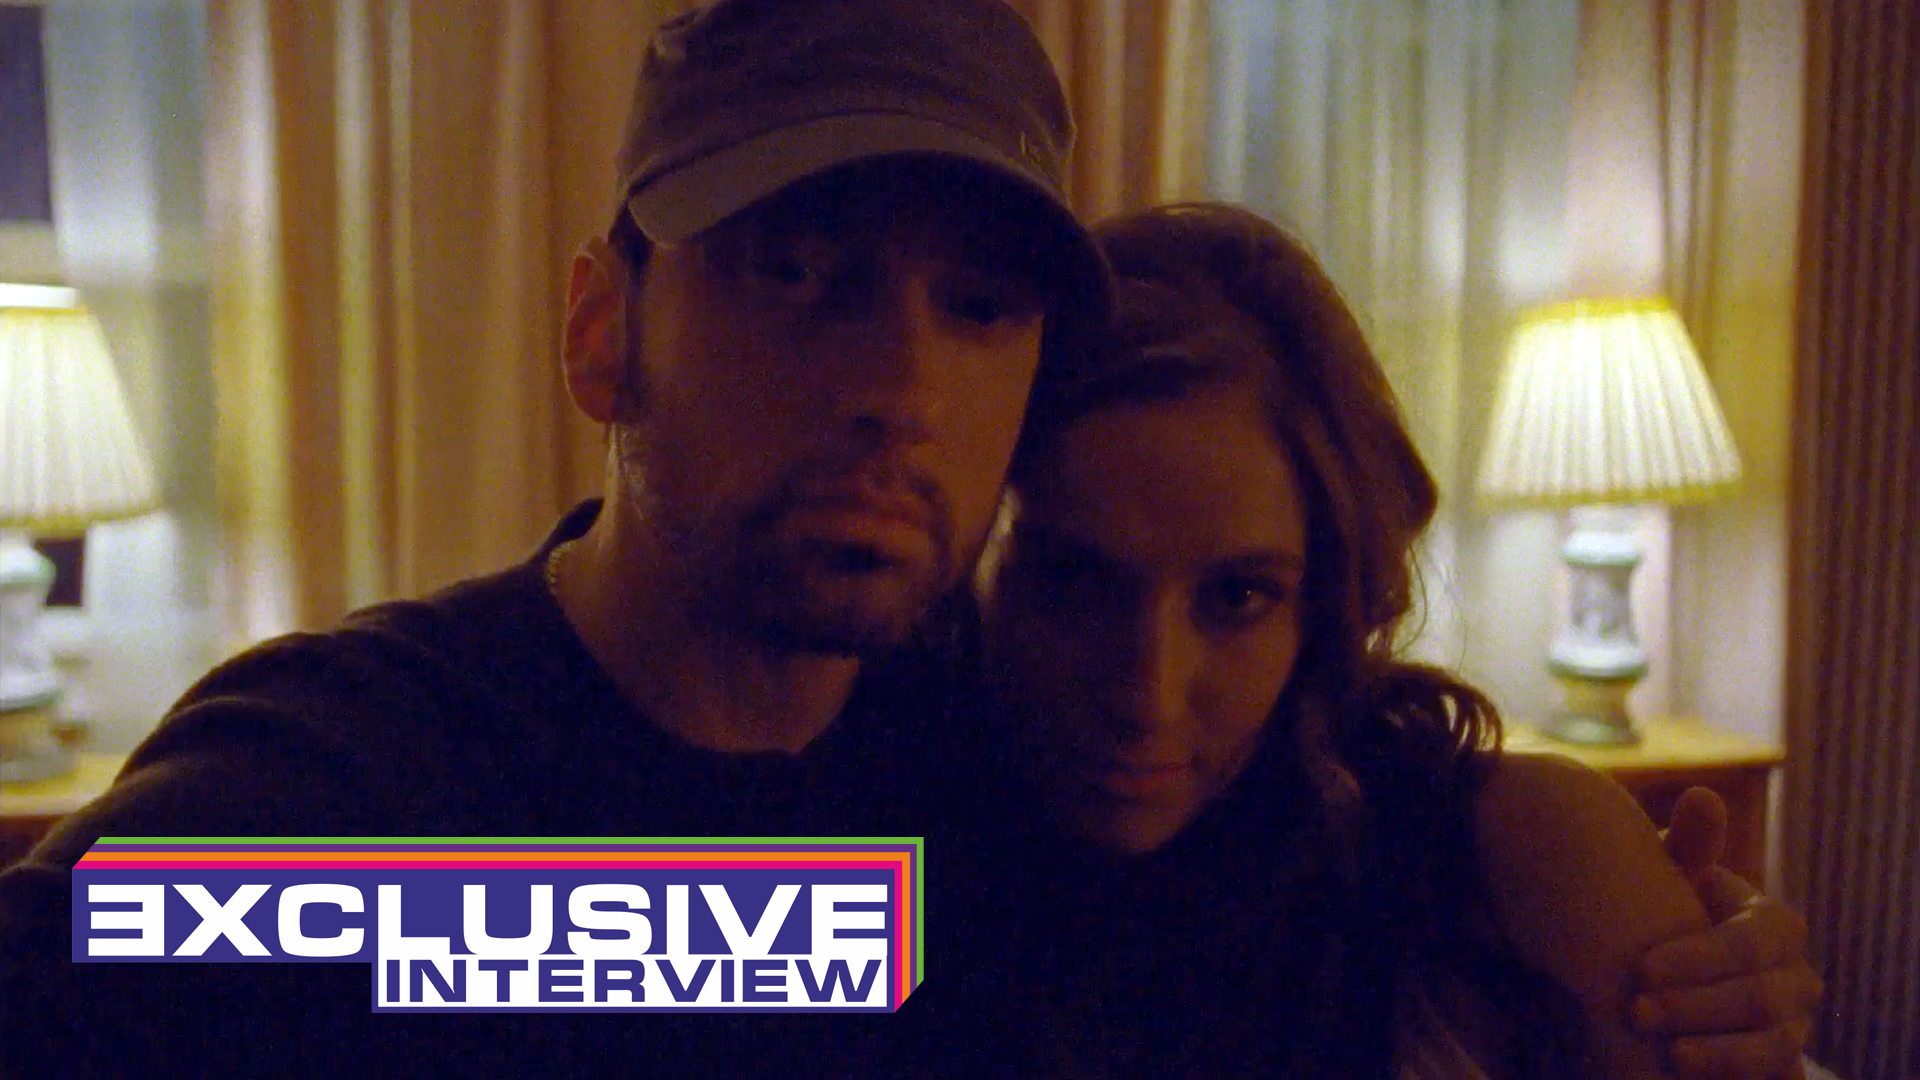 Eminem.Pro exclusive interview with Sarati, actress who played Suzanne in Eminem's and Ed Sheeran's video «River».